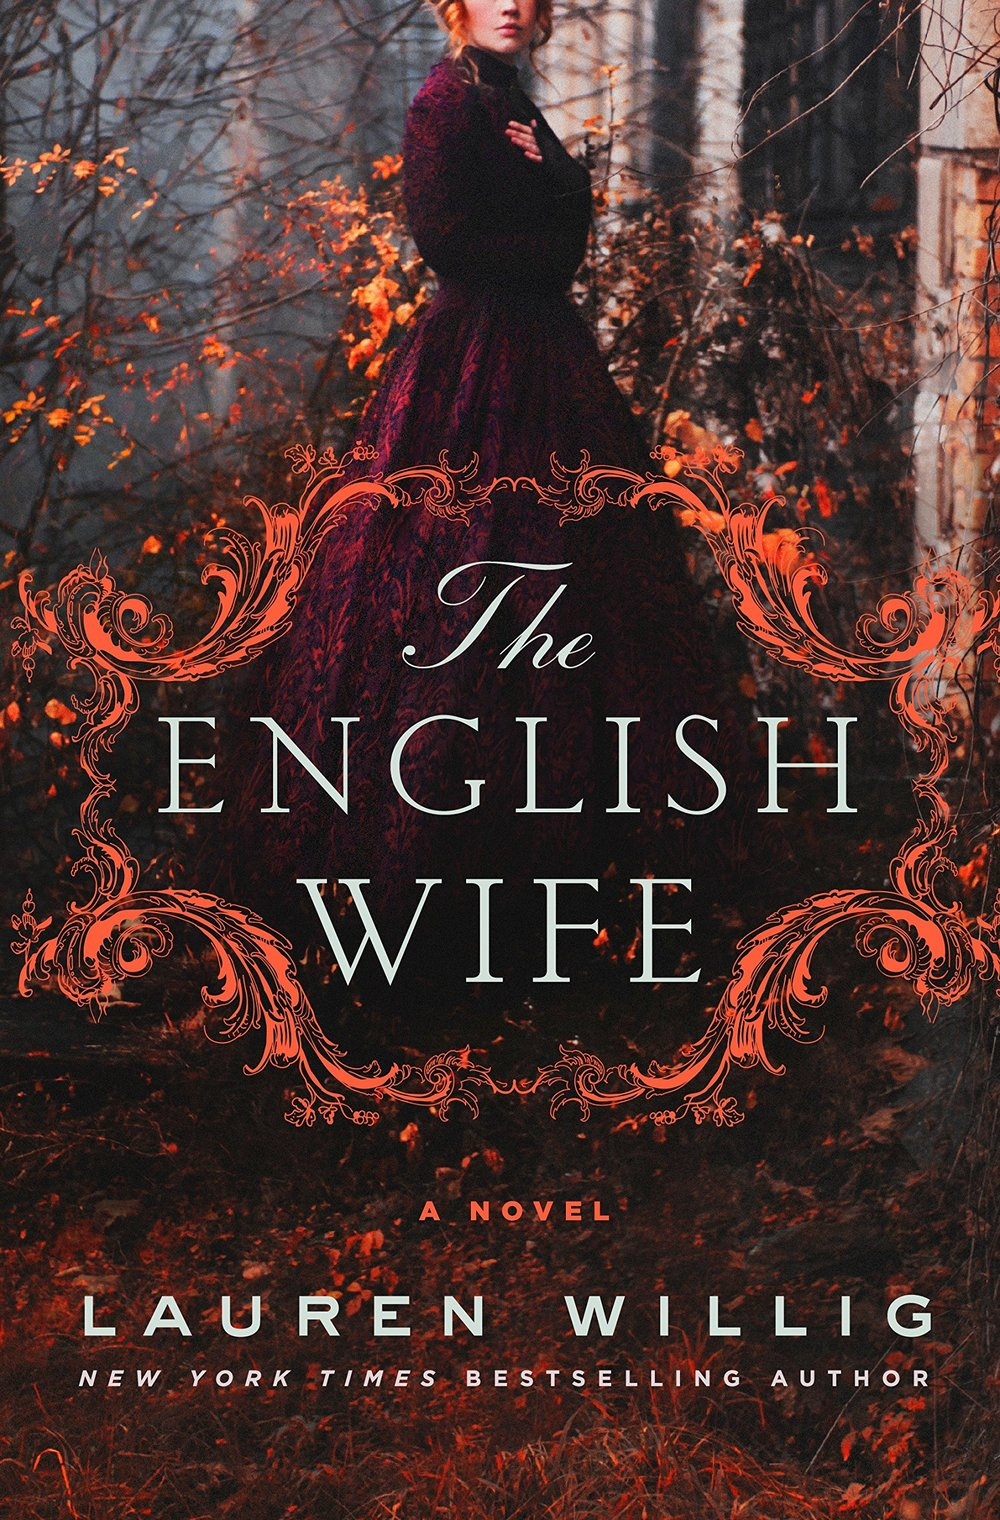 the english wife by lauren willig.jpg